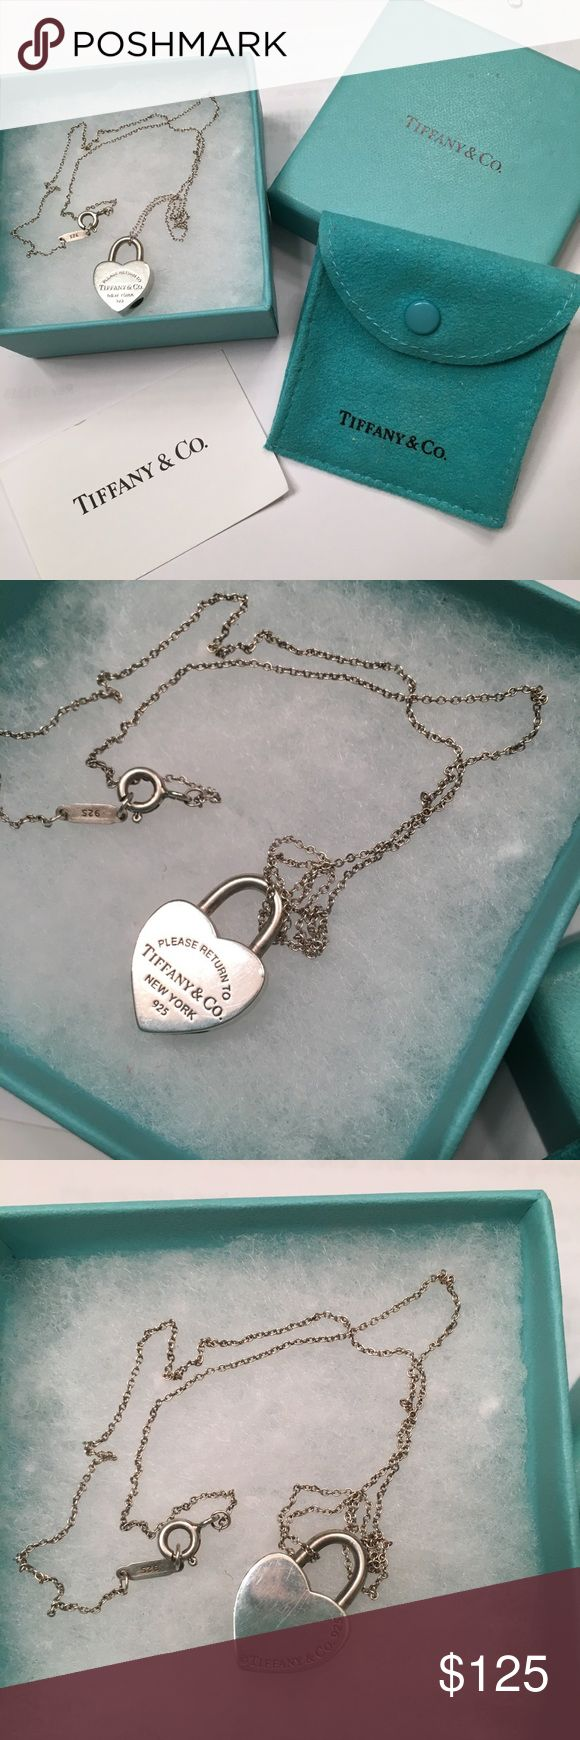 Tiffany heart necklace Tiffany & Co. heart necklace.  Please see pics. Used condition. There are some scratches on the front and back of the heart pendant.  Still looks lovely on❤️. 16 inch Tiffany chain included Tiffany & Co. Jewelry Necklaces